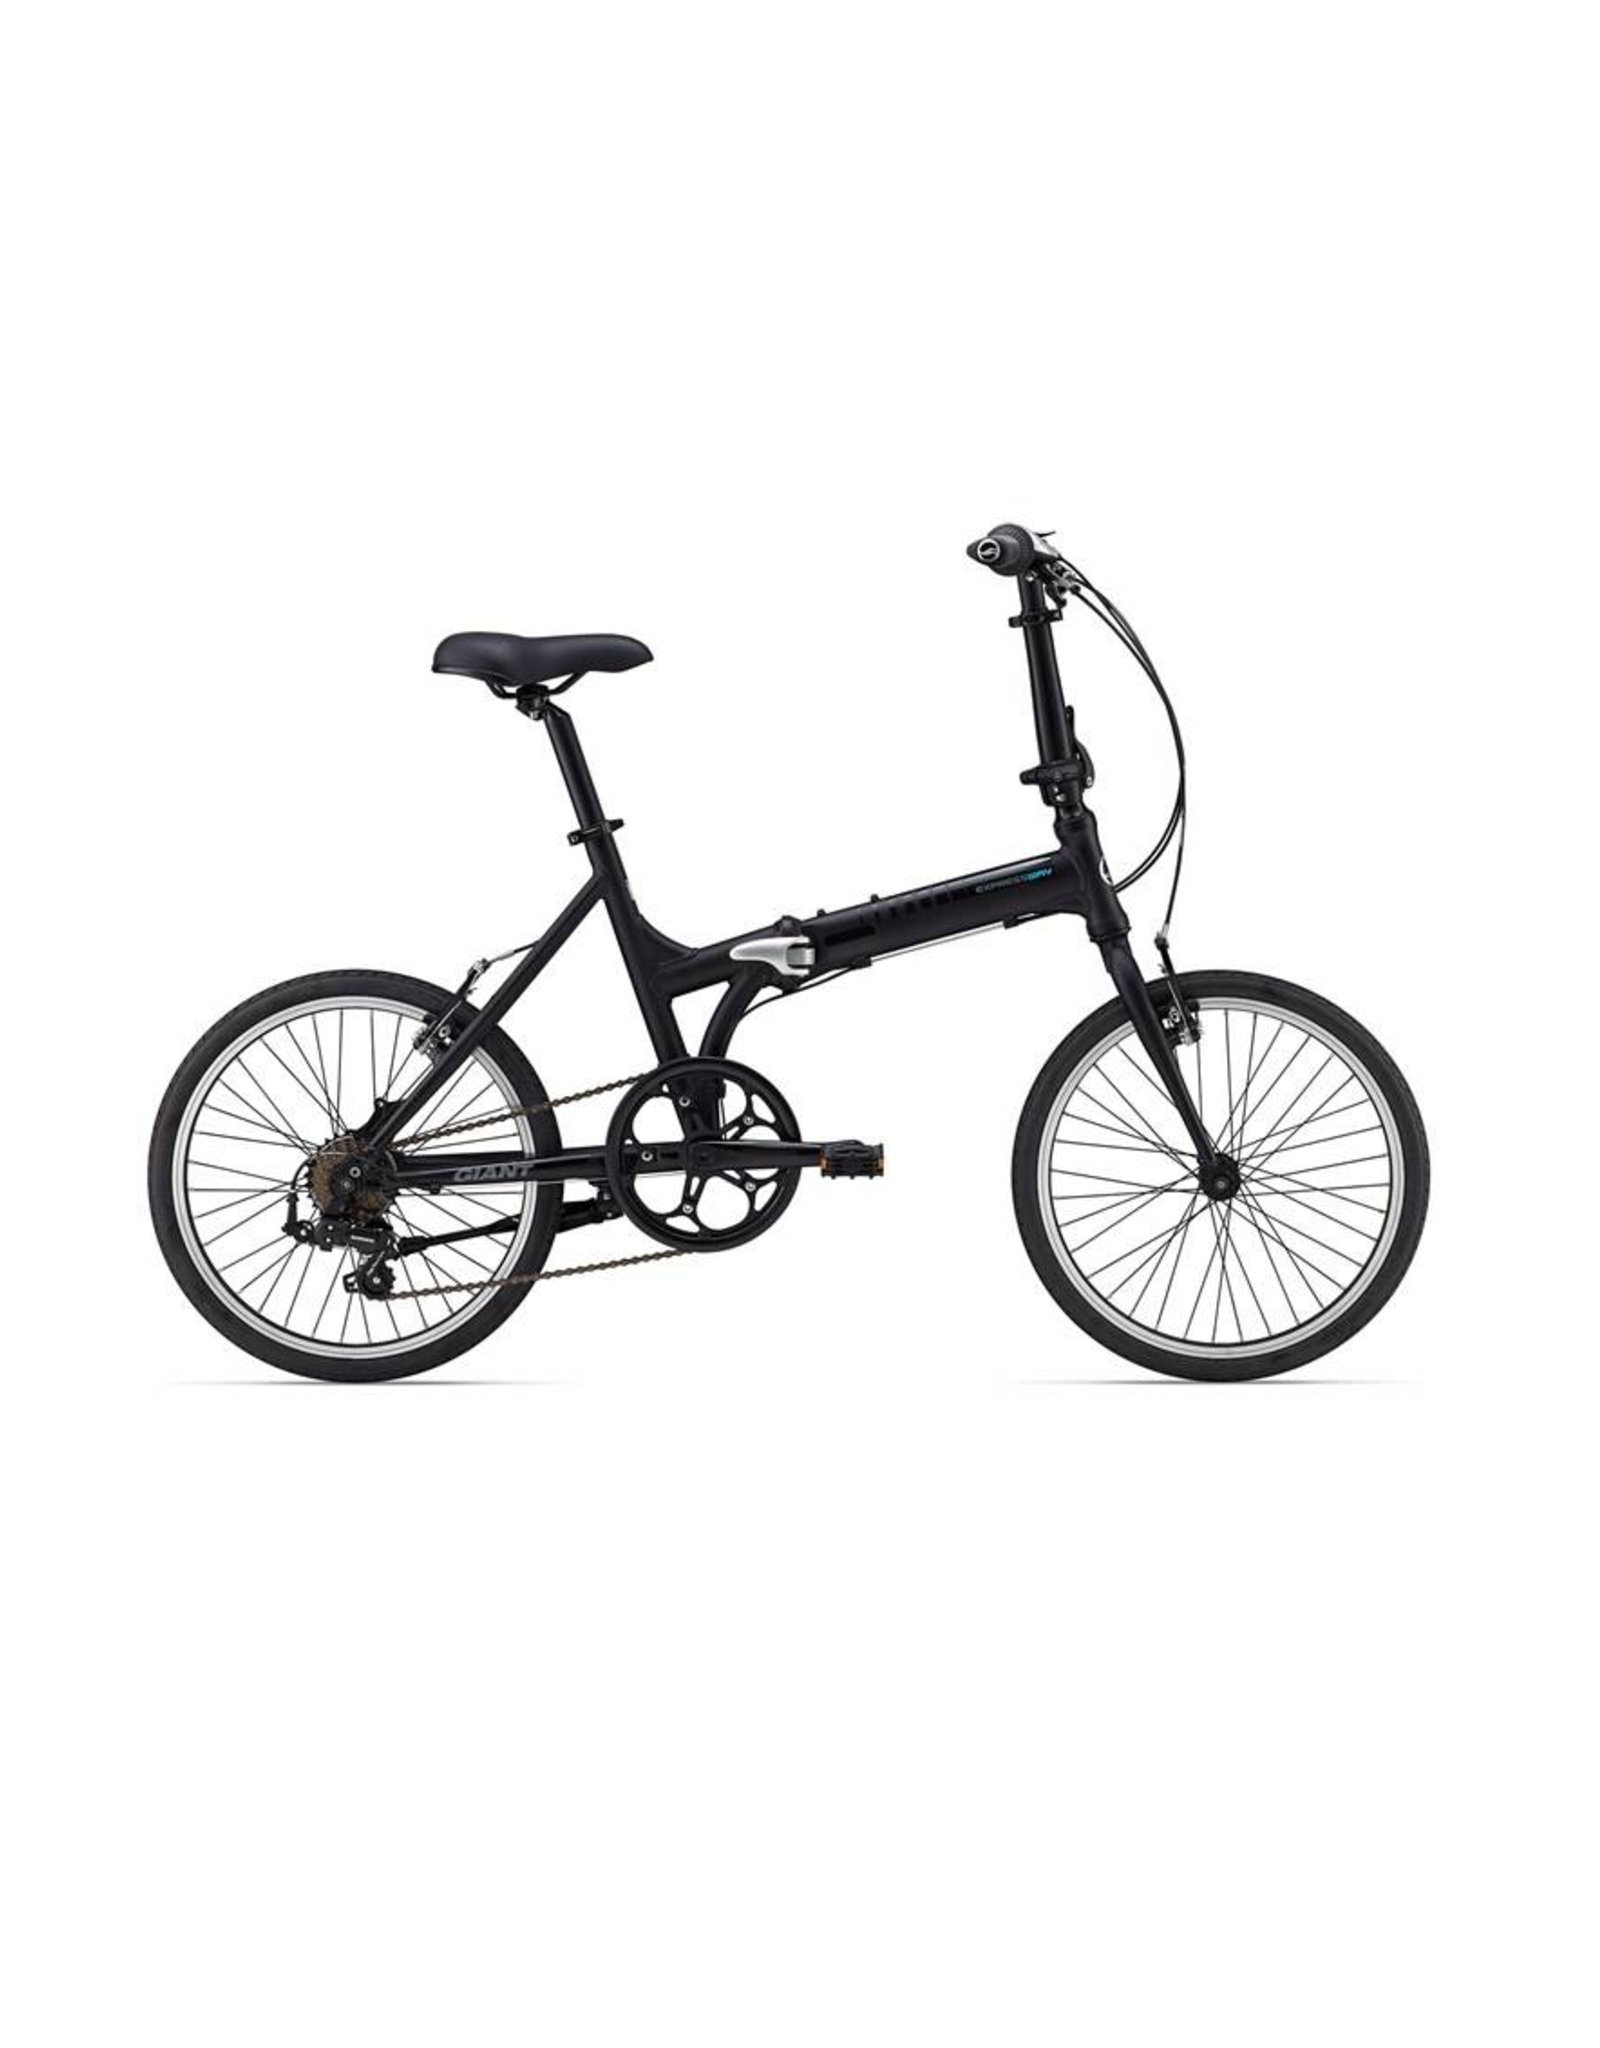 Giant Giant ExpressWay 1 Dark Grey/Silver Folding Bicycle